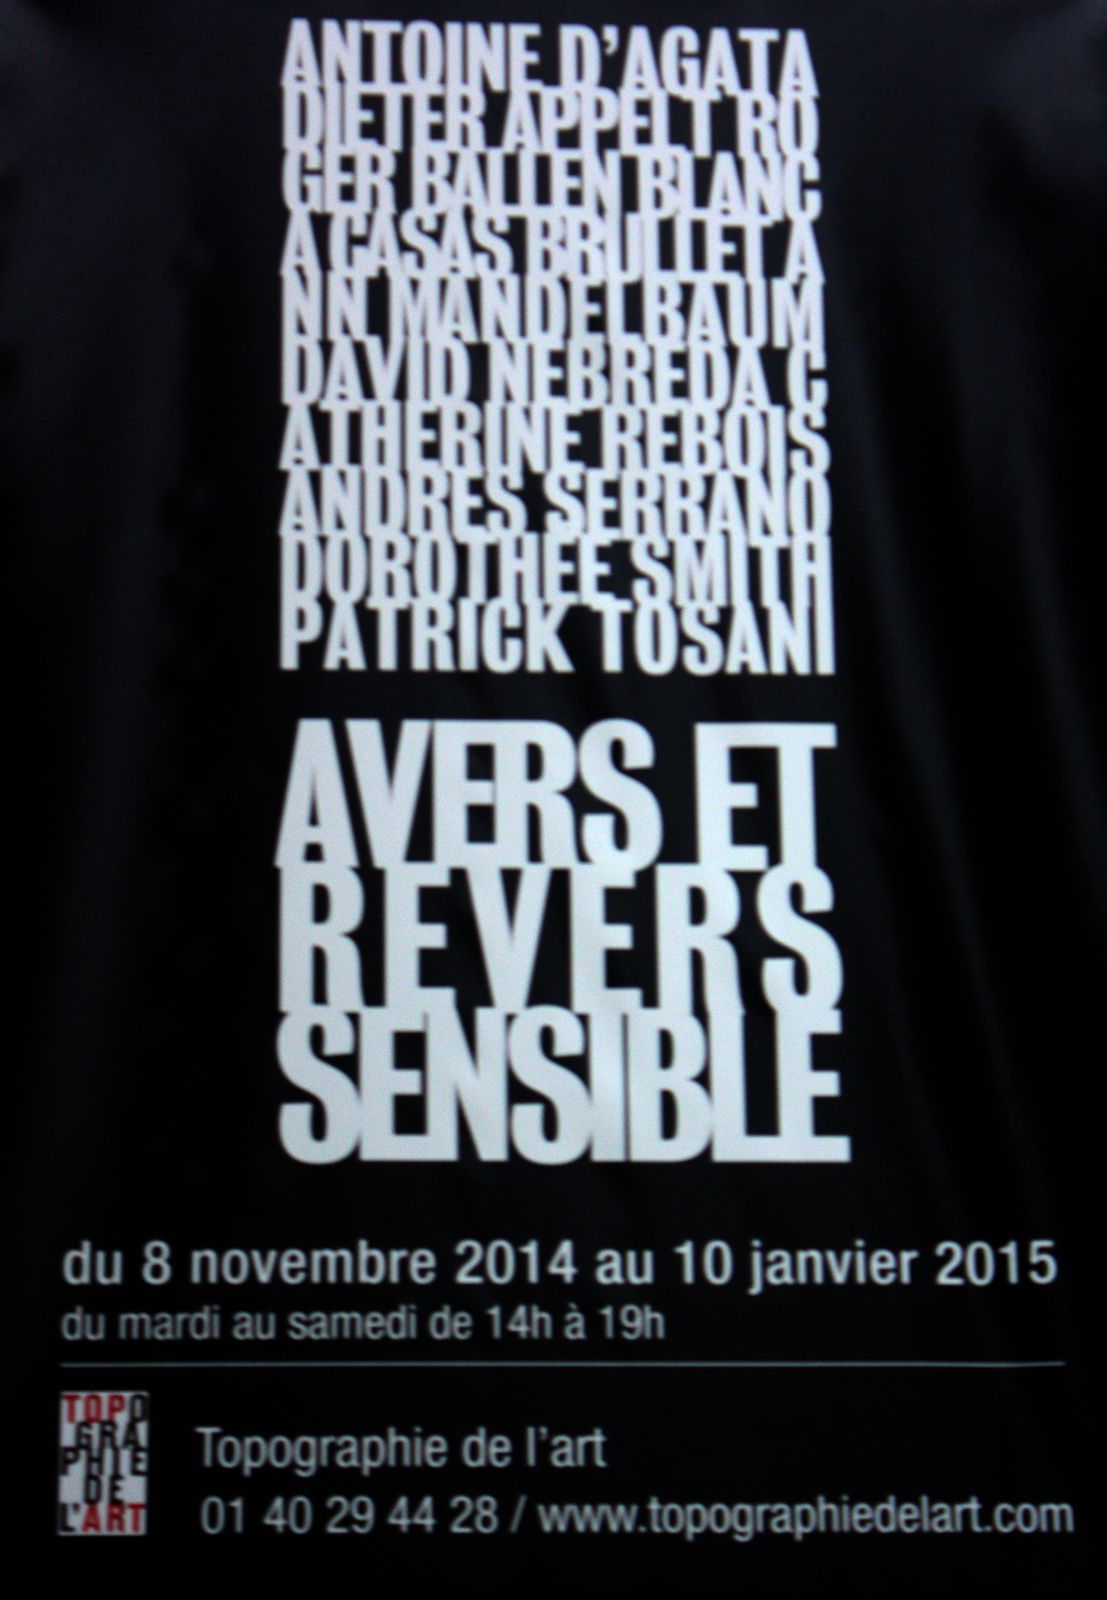 Expo Collective Contemporaine: Avers et revers sensible